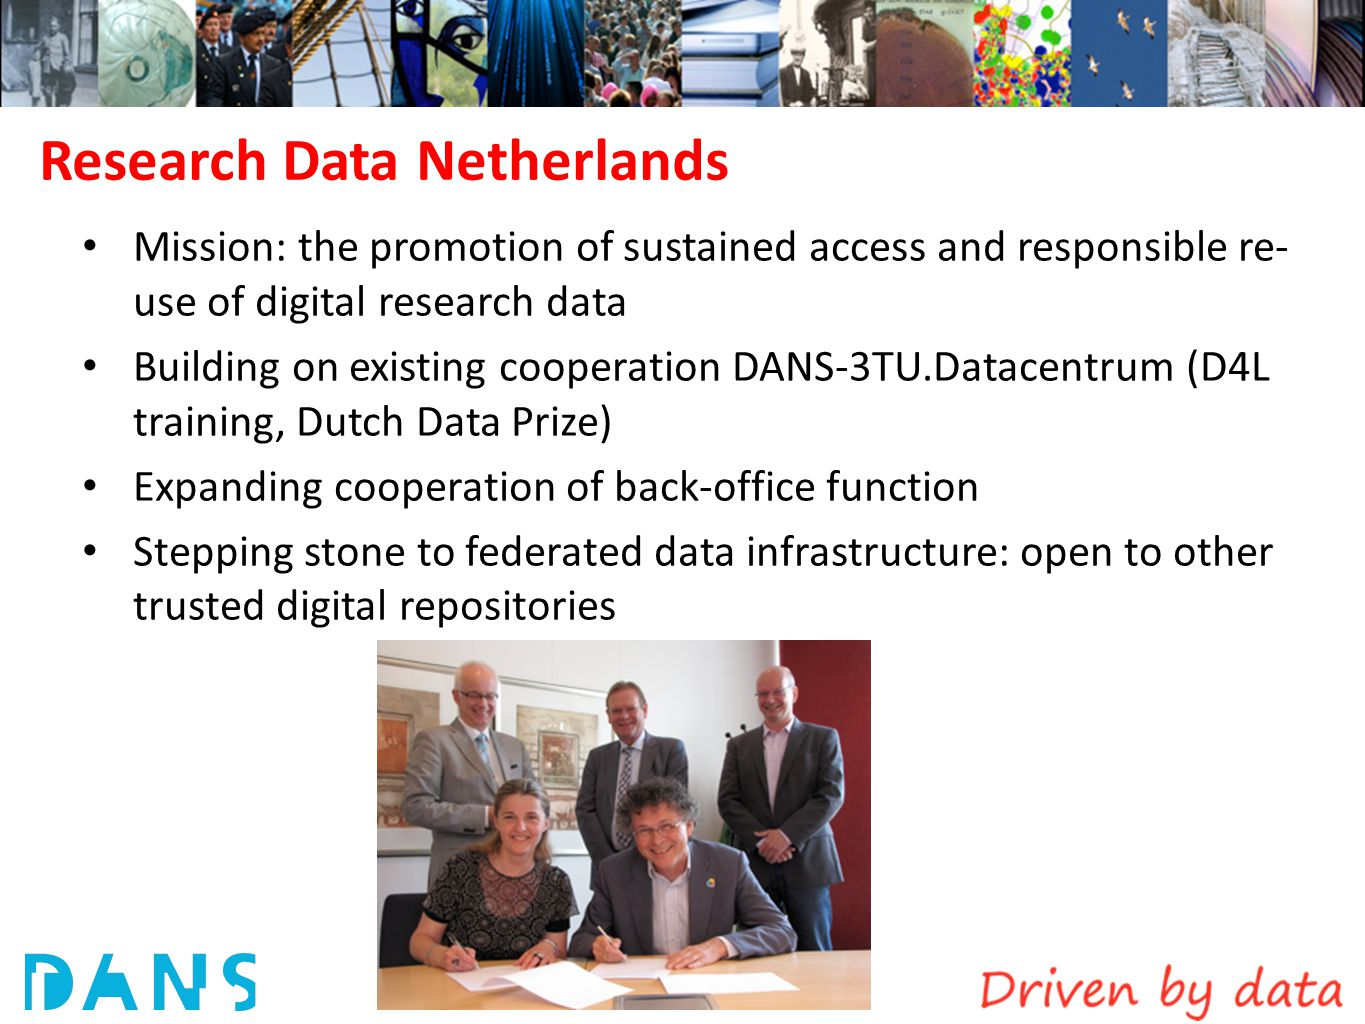 Research Data Netherlands